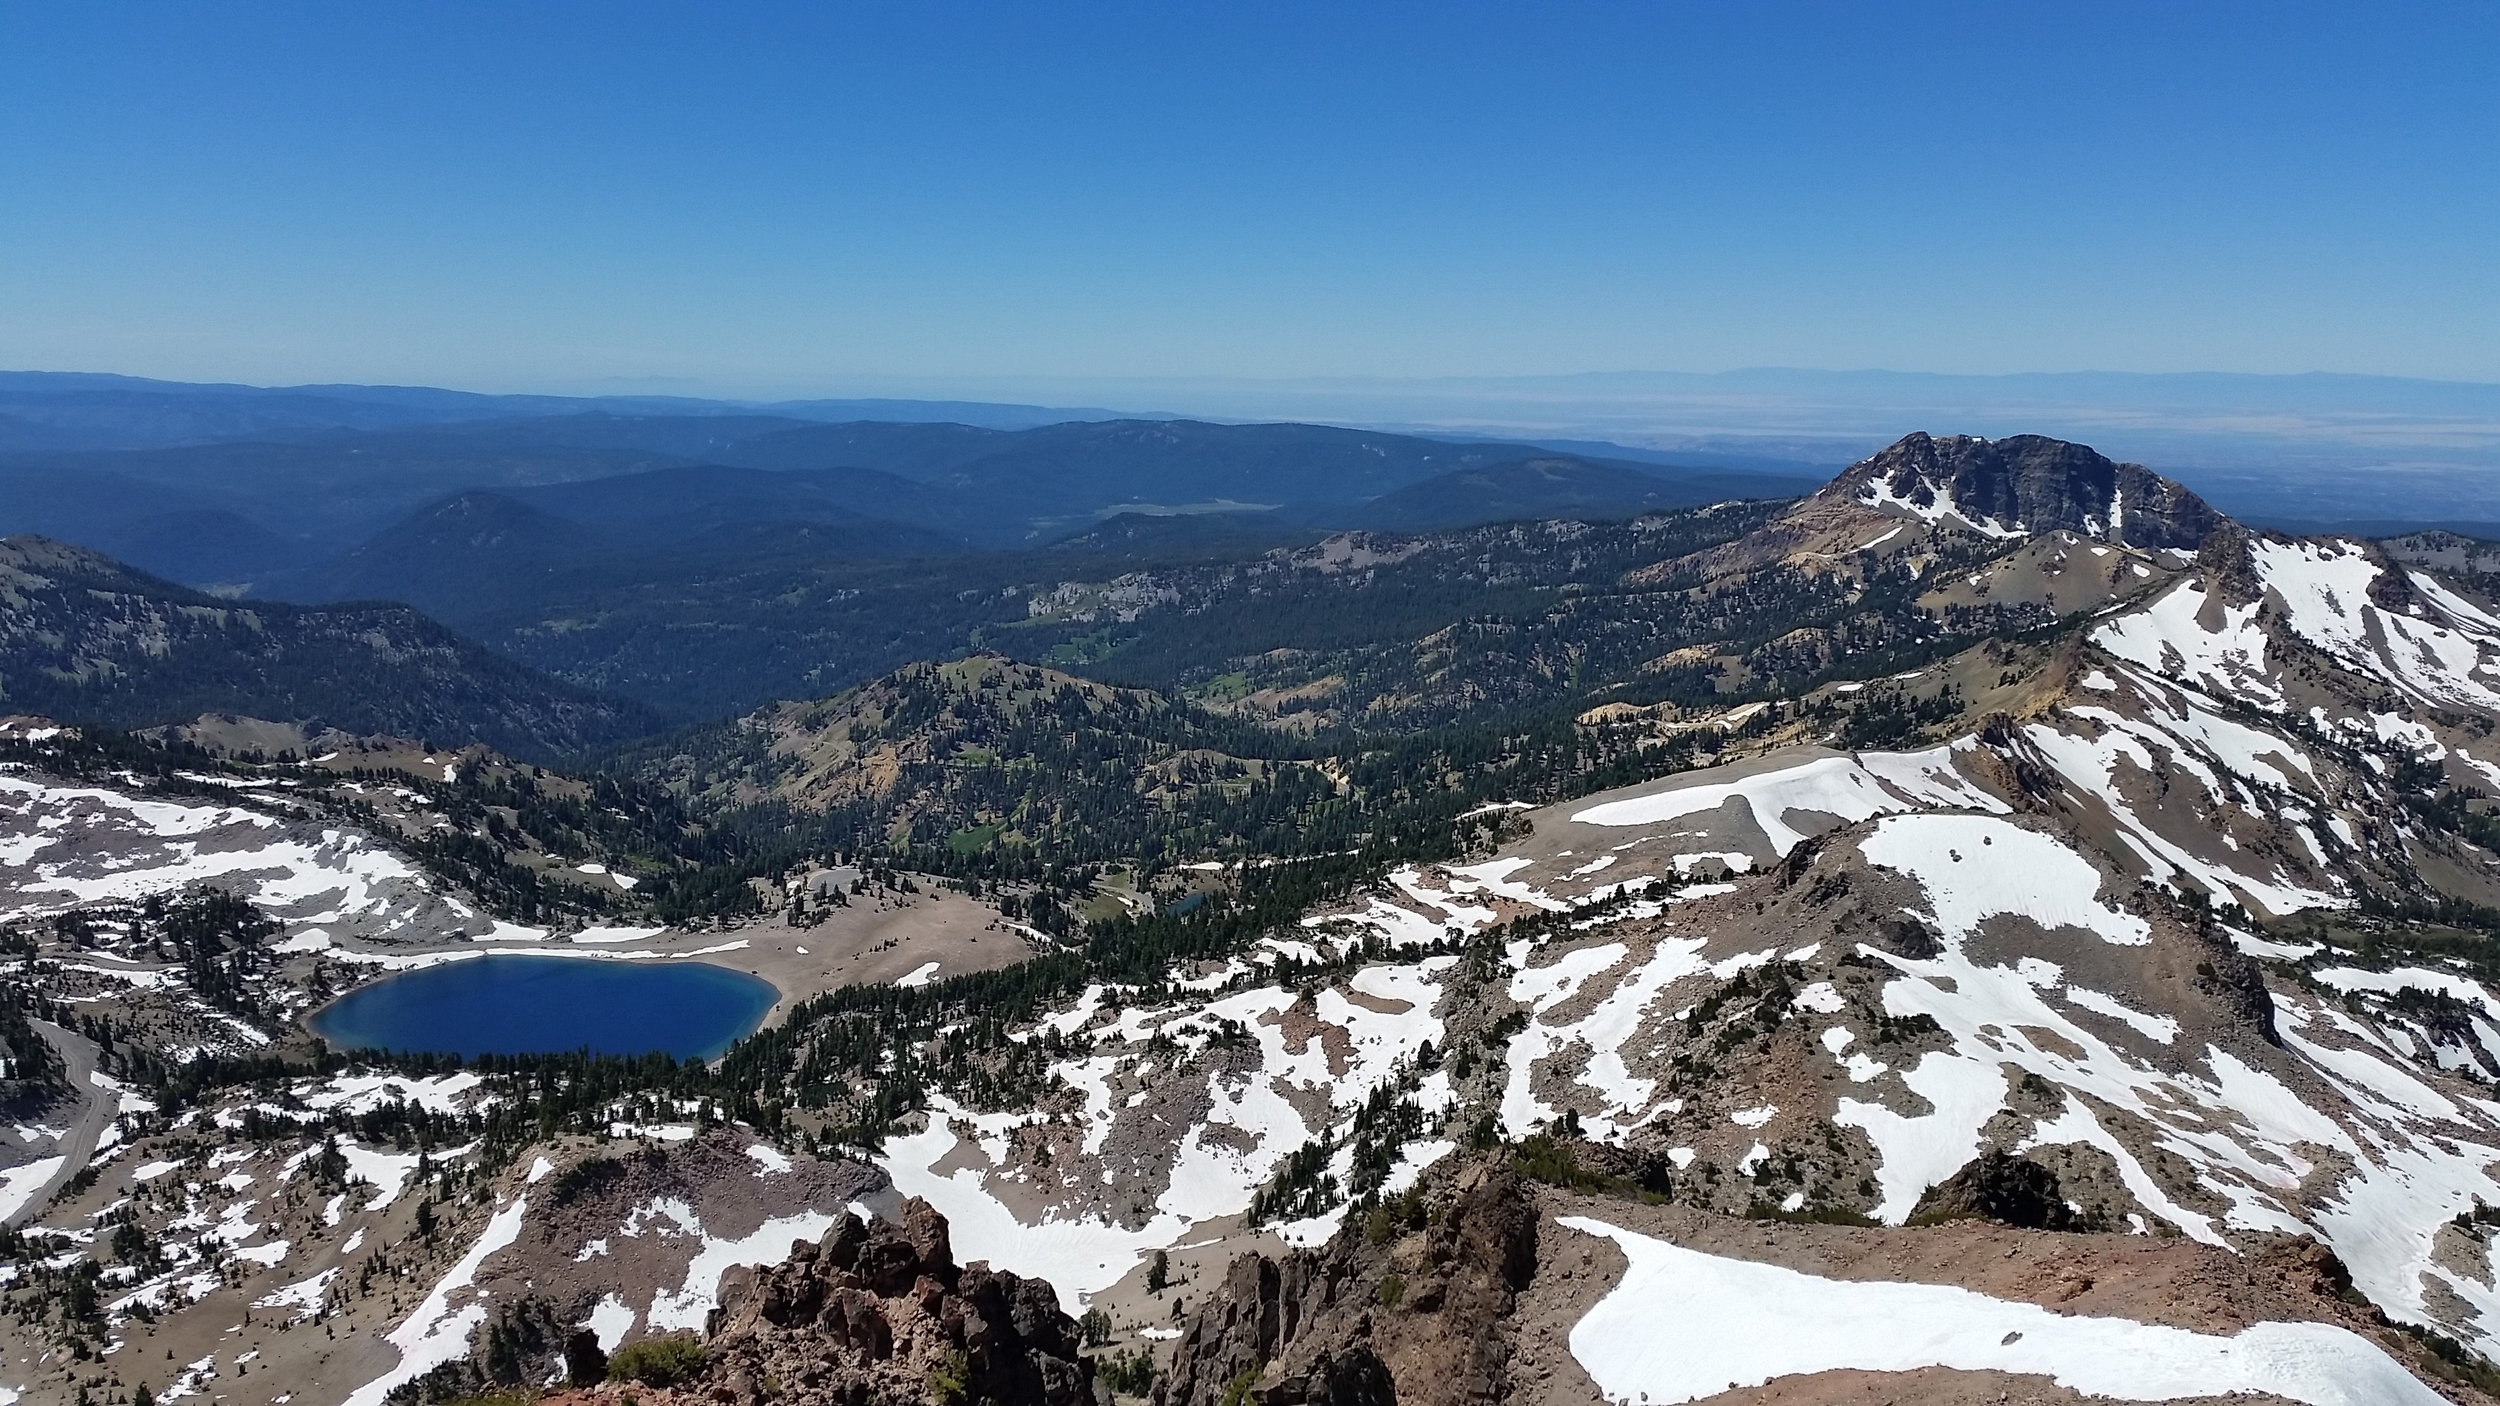 Took a rest day  and decided to climb Lassen Peak